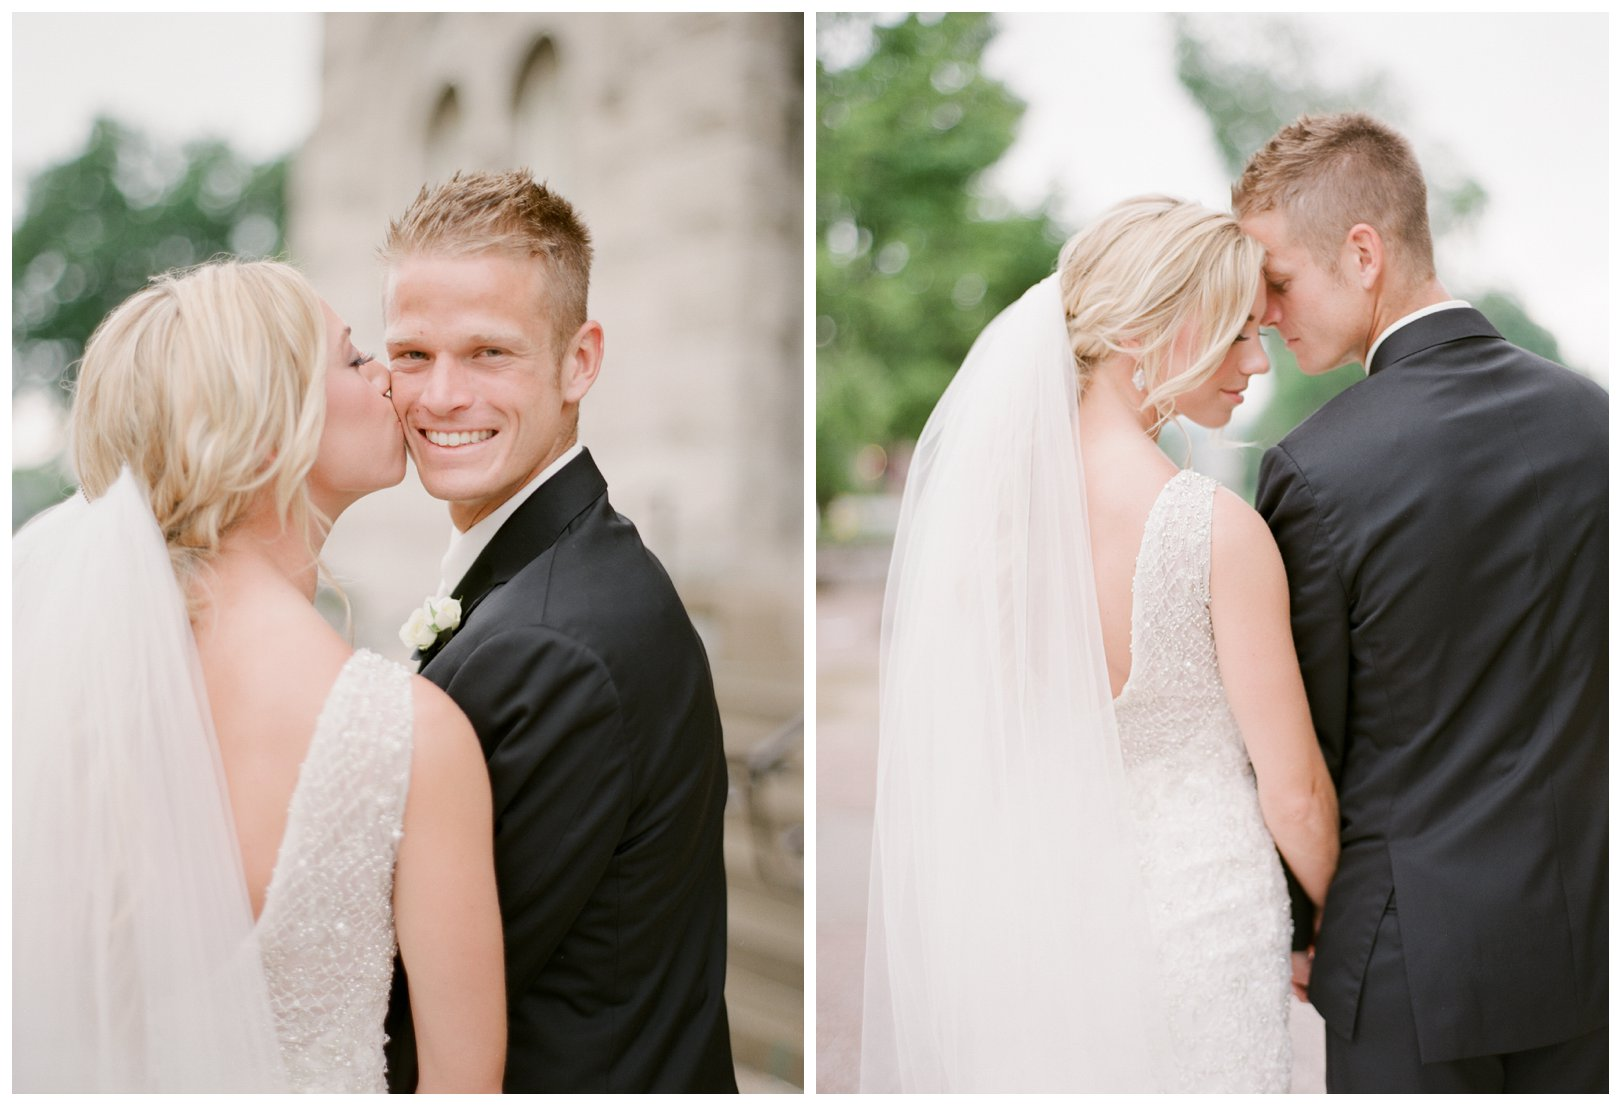 lauren muckler photography_fine art film wedding photography_st louis_photography_1067.jpg